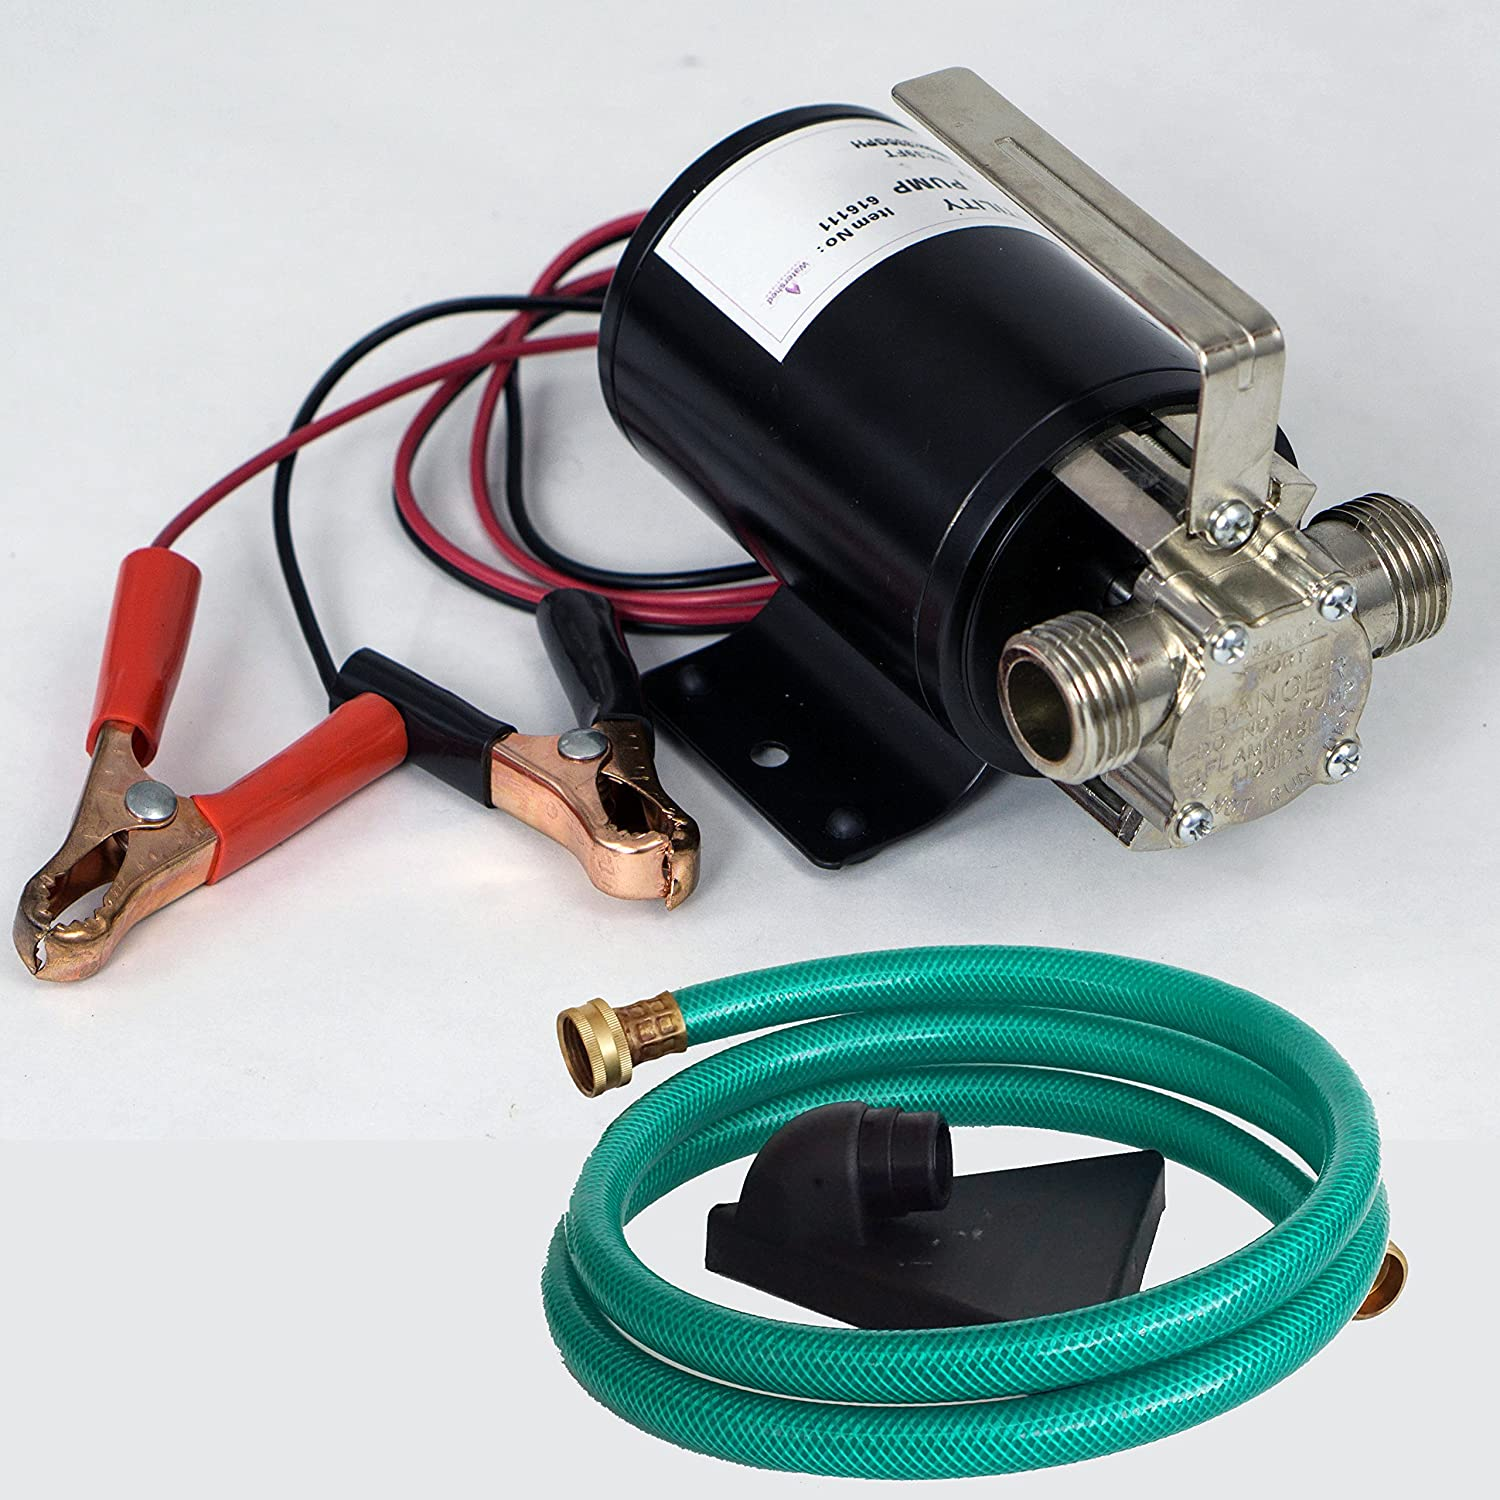 """HydraPump Mini DC - 12-volt 1/10th HP 330 GPH Battery Powered Portable Transfer Water Pump with Metal Connectors for Standard 3/4"""" Garden Hose"""